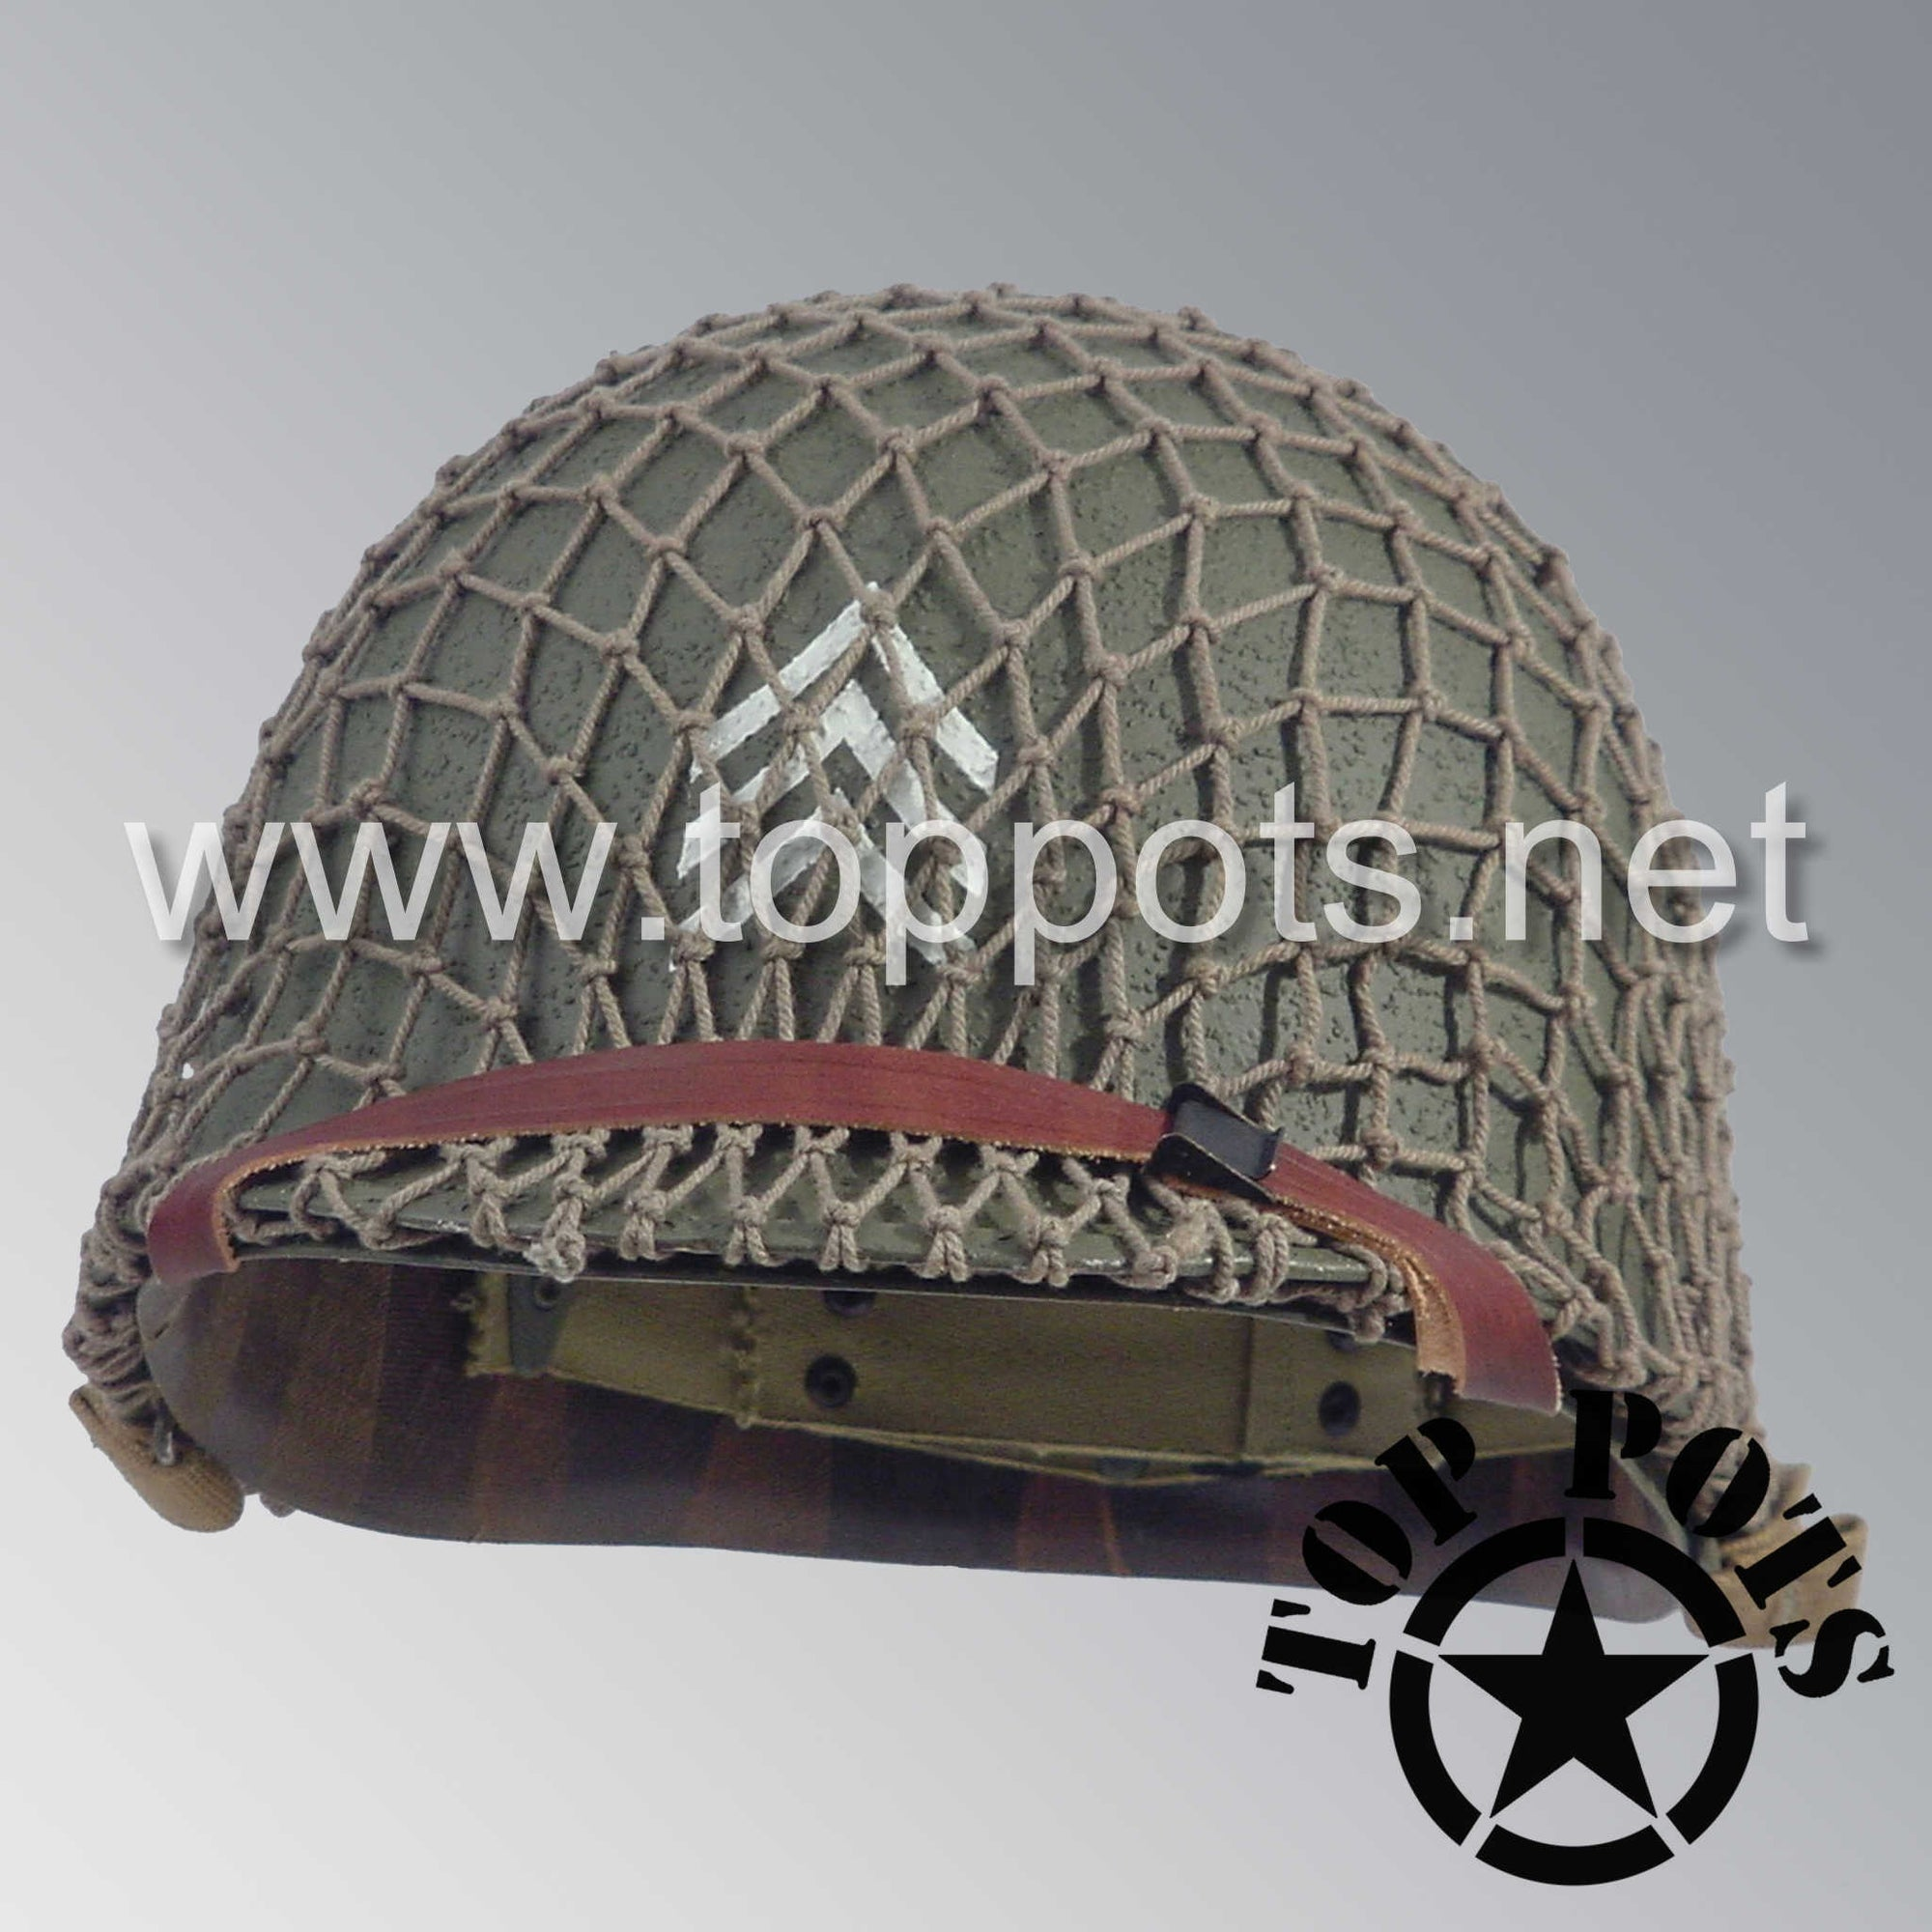 Image 1 of WWII US Army Restored Original M1 Infantry Helmet Swivel Bale Shell and Liner with 2nd Ranger NCO Emblem and Khaki Net